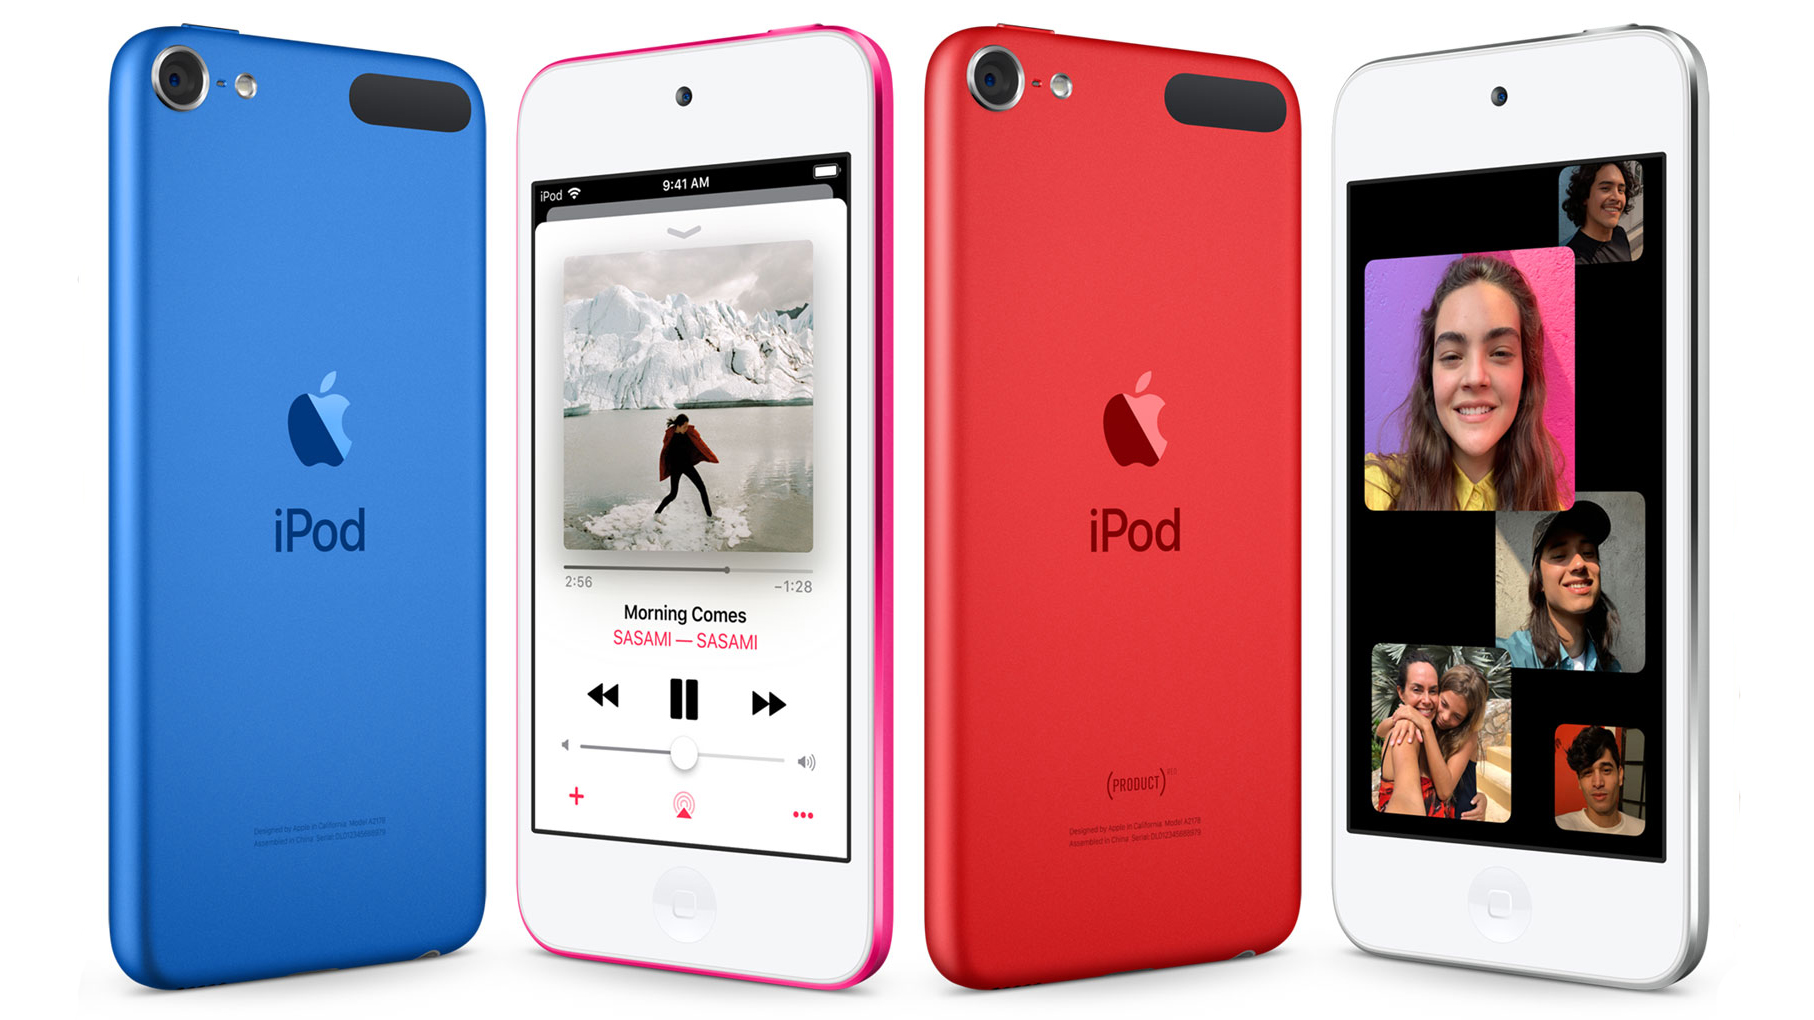 New iPod Touch has gaming at its heart, arriving in time for Apple